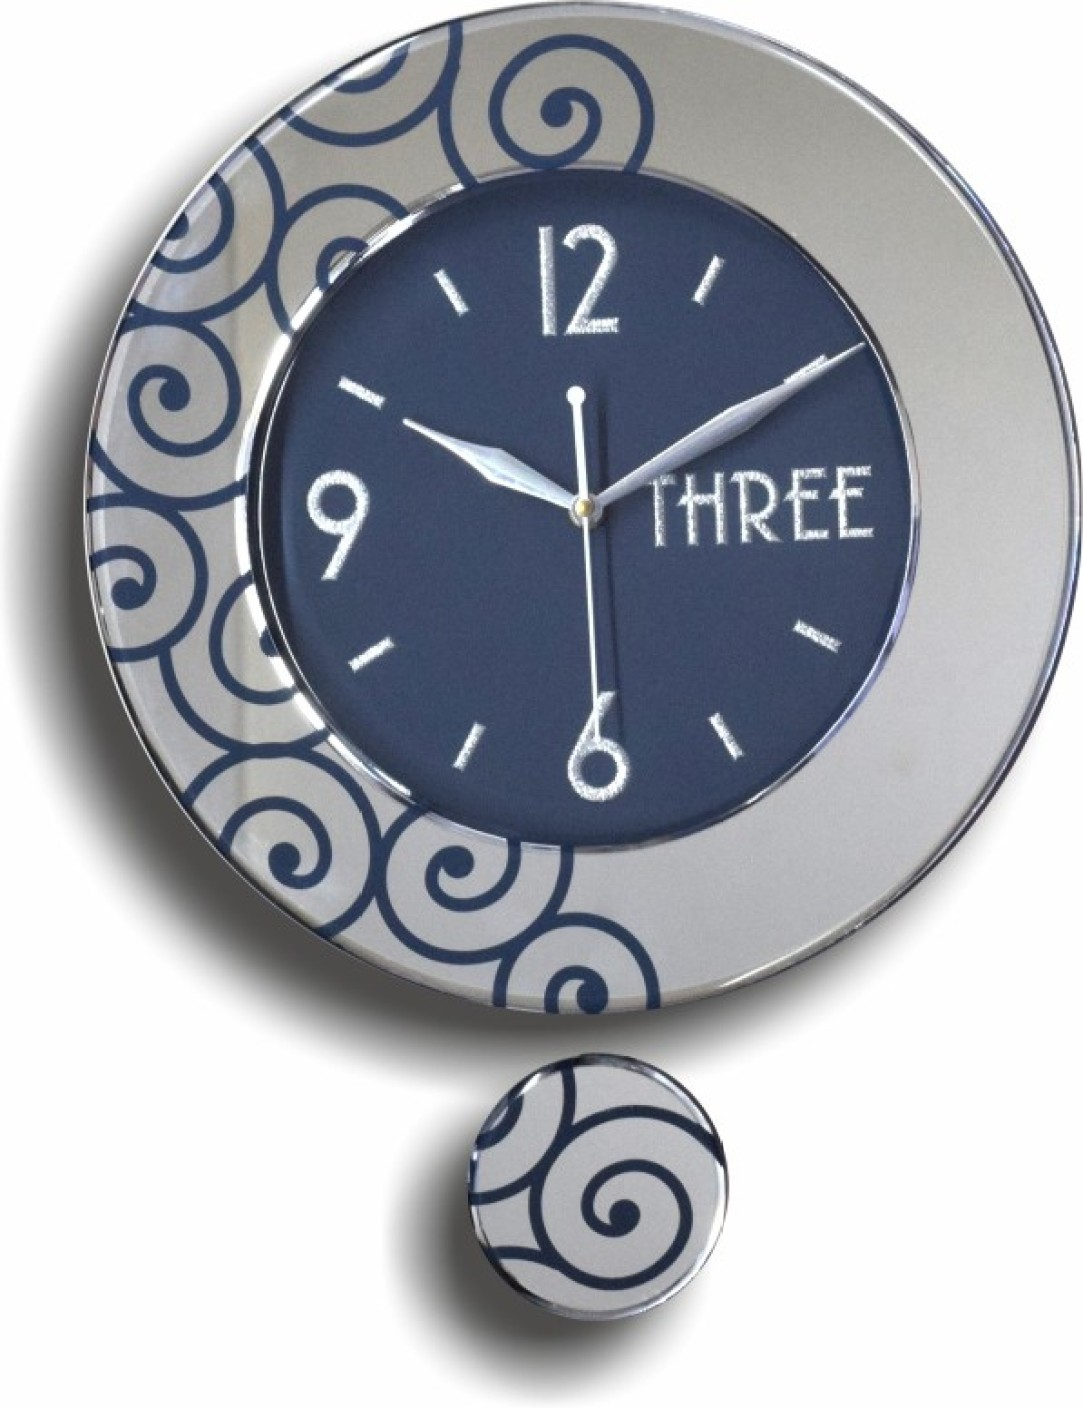 Q Time Analog Wall Clock. ON OFFER